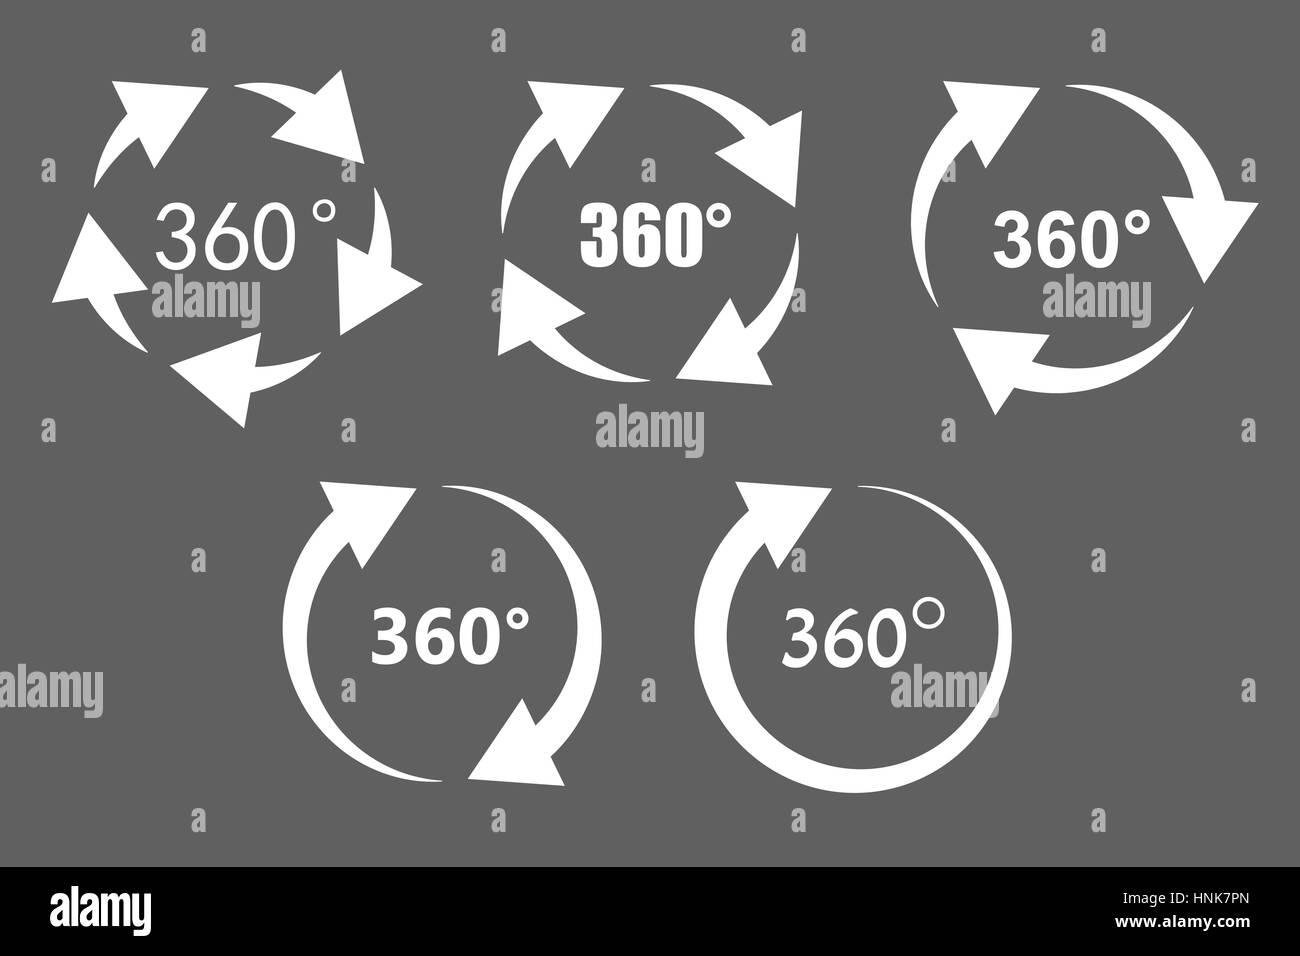 360 degree rotation icons - Stock Image